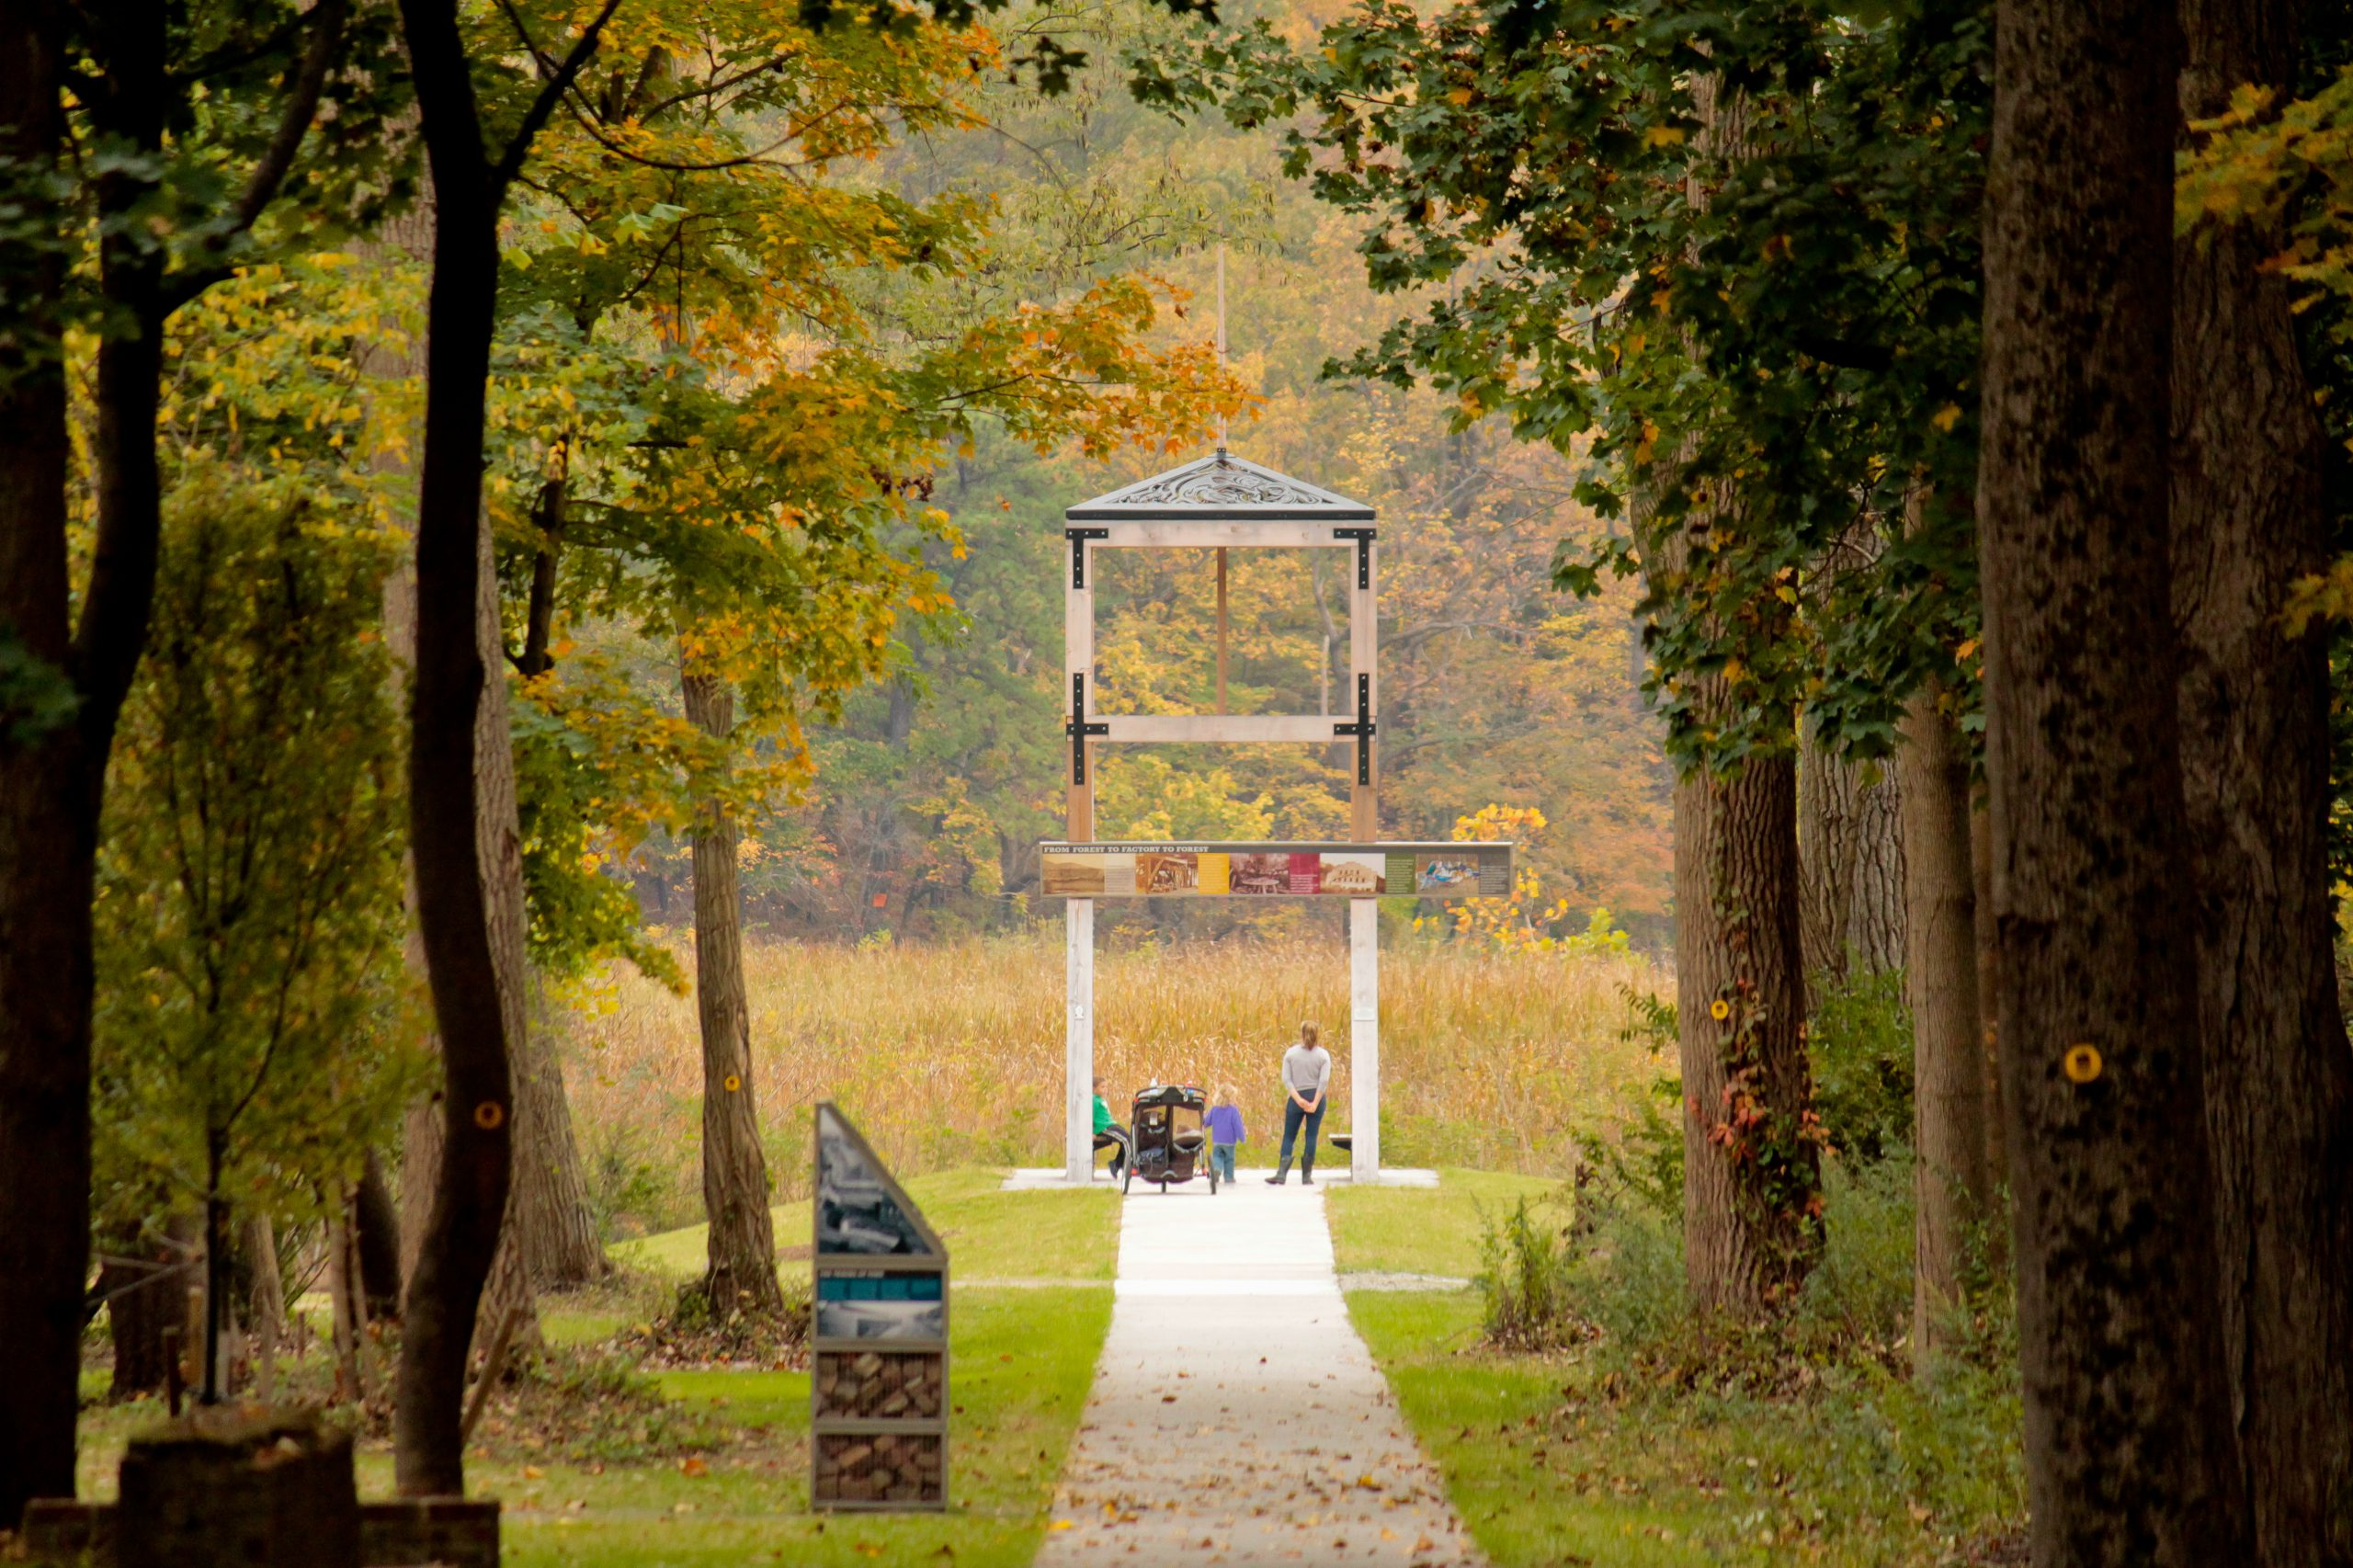 Project image 5 for West Point Foundry Preserve, Scenic Hudson